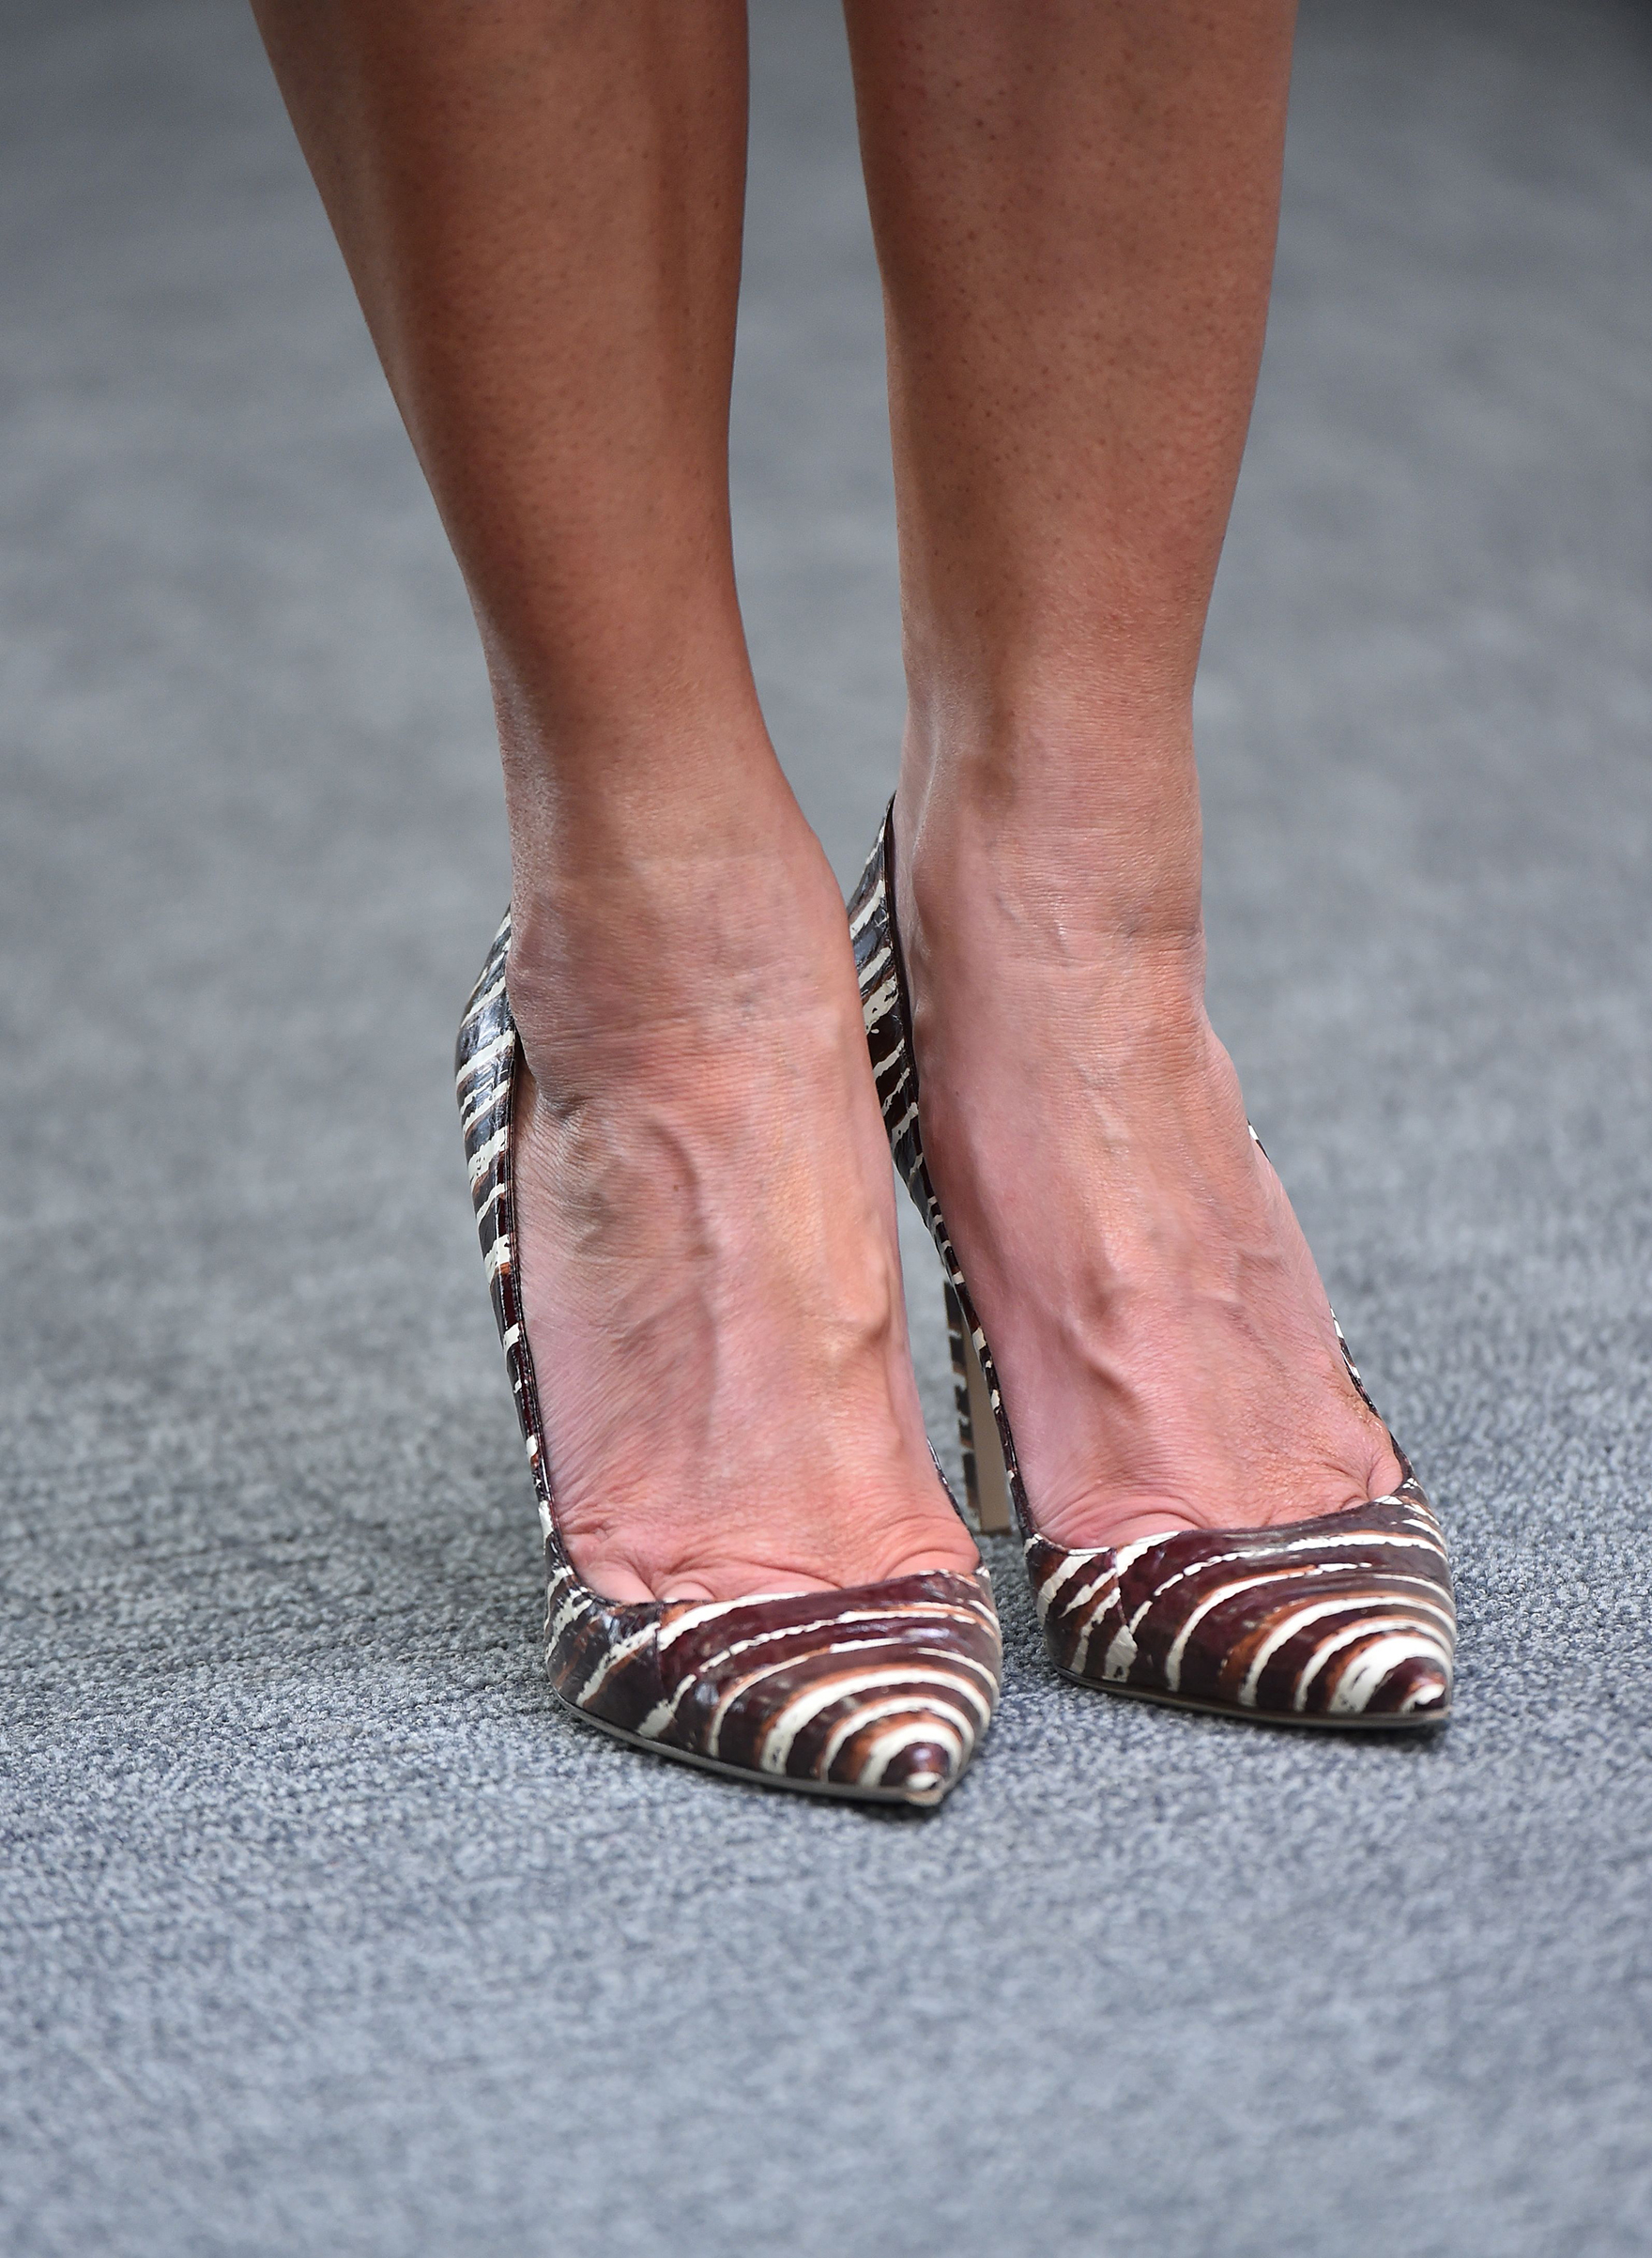 A picture shows the  brown and white striped Manolo Blahnik  shoes of First Lady Melania Trump as she visits the American International School in the Saudi capital Riyadh on May 21, 2017.